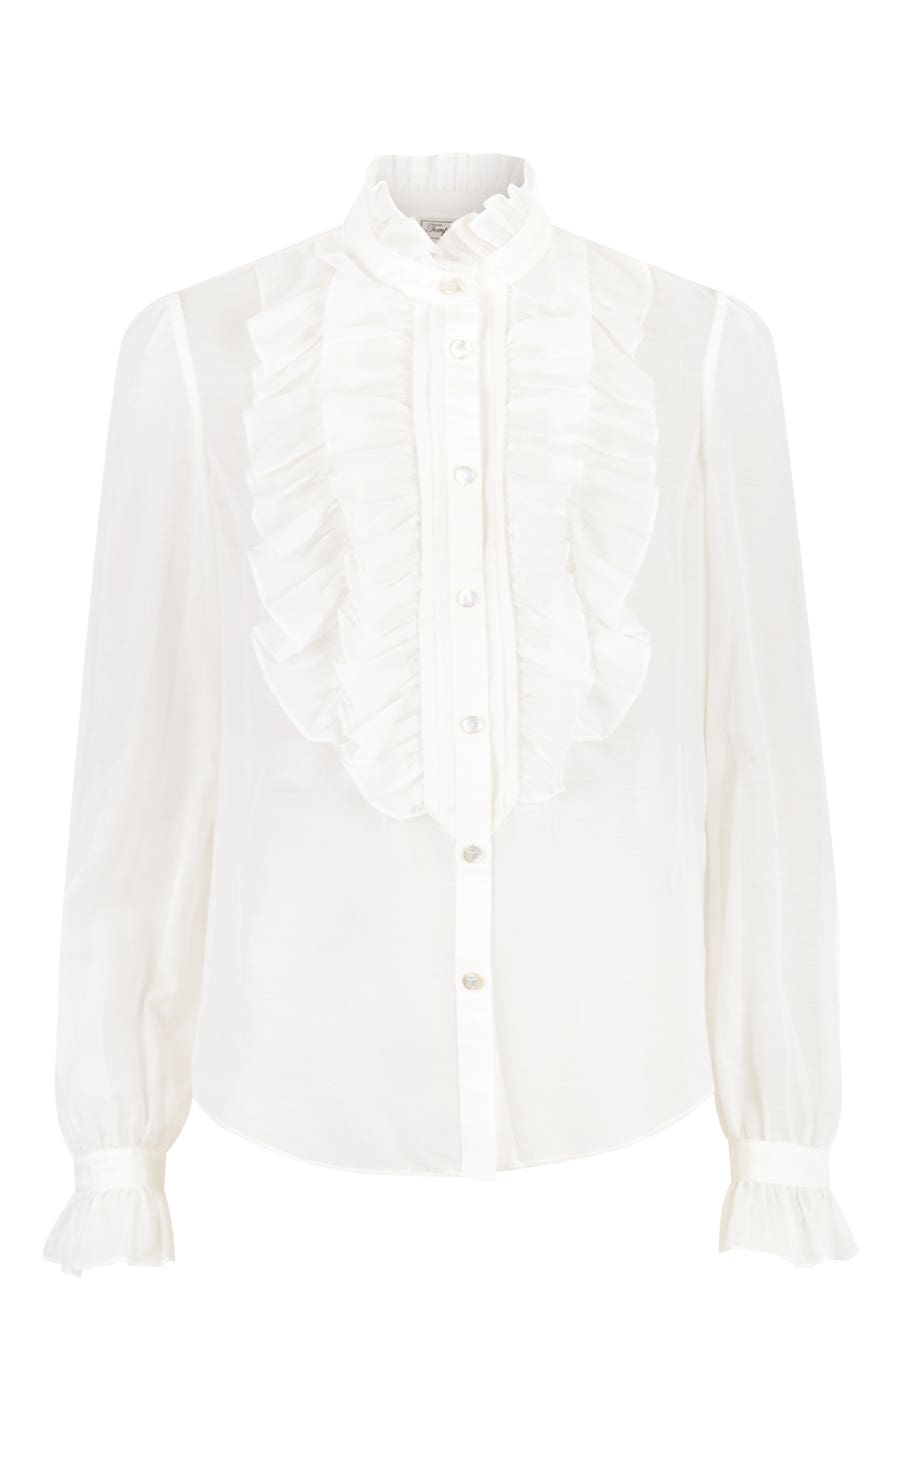 Strawberry Ruffle Shirt, White